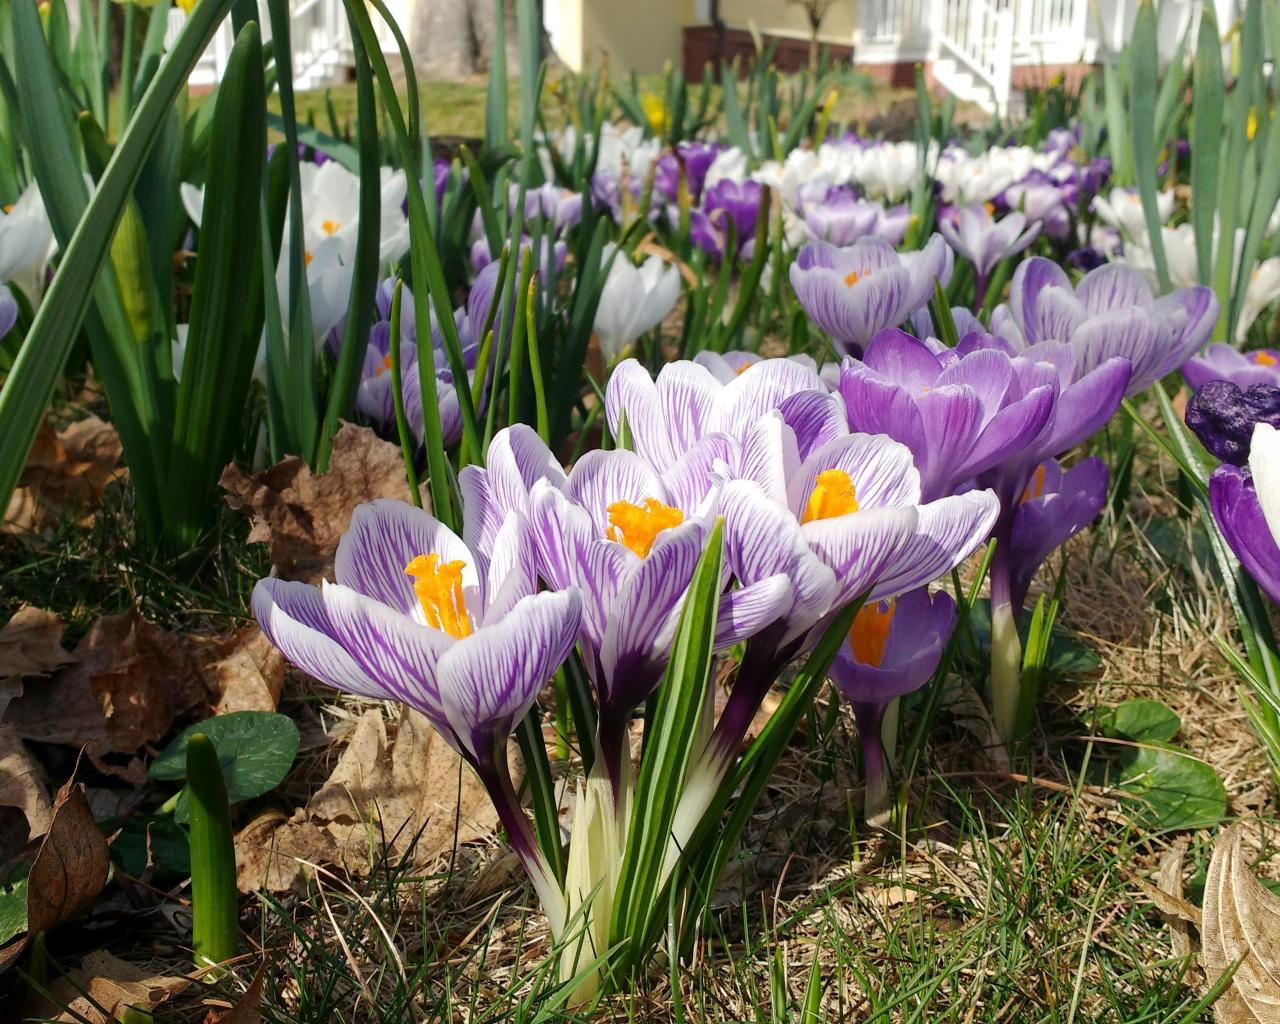 3 Ways To Get Your Garden Ready for Spring